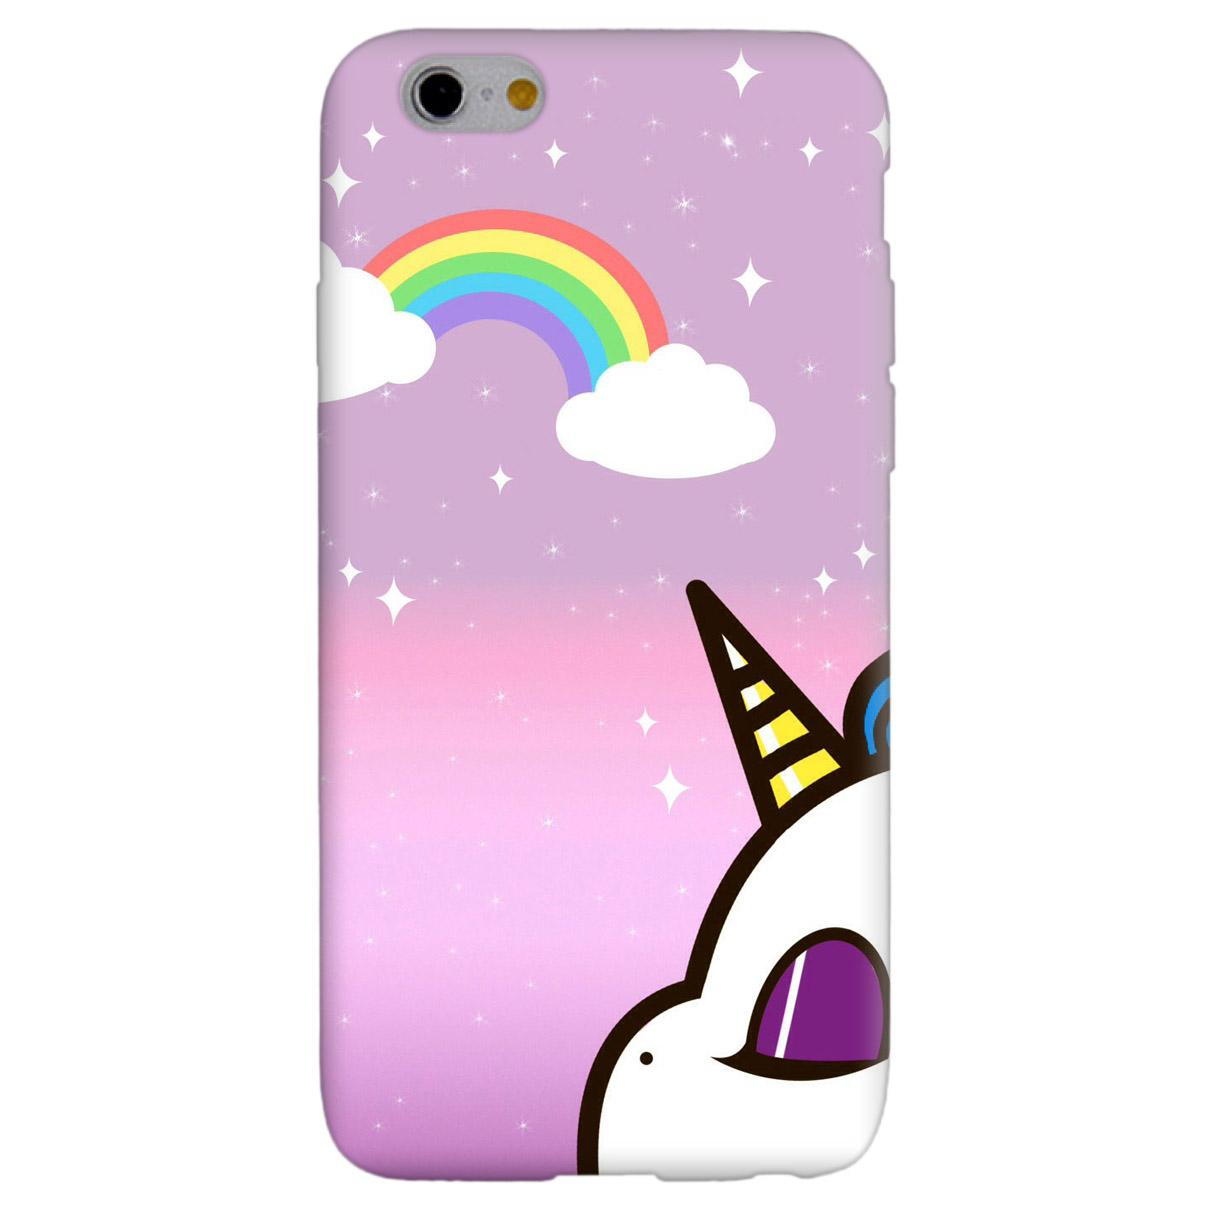 custodia iphone se unicorno